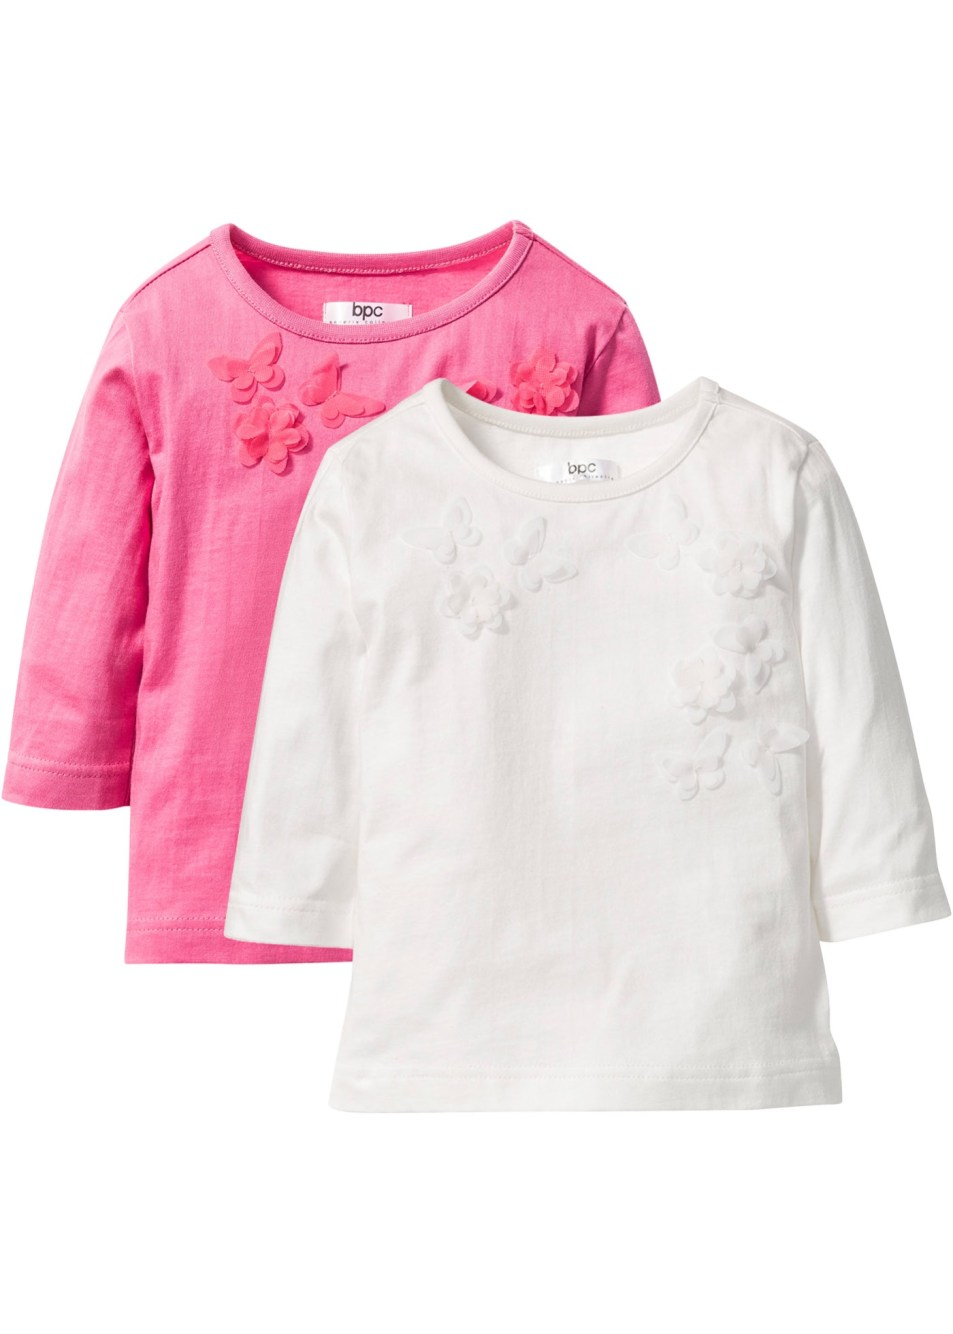 Lot de 2 T-shirts avec application, T. 80/86-128/134